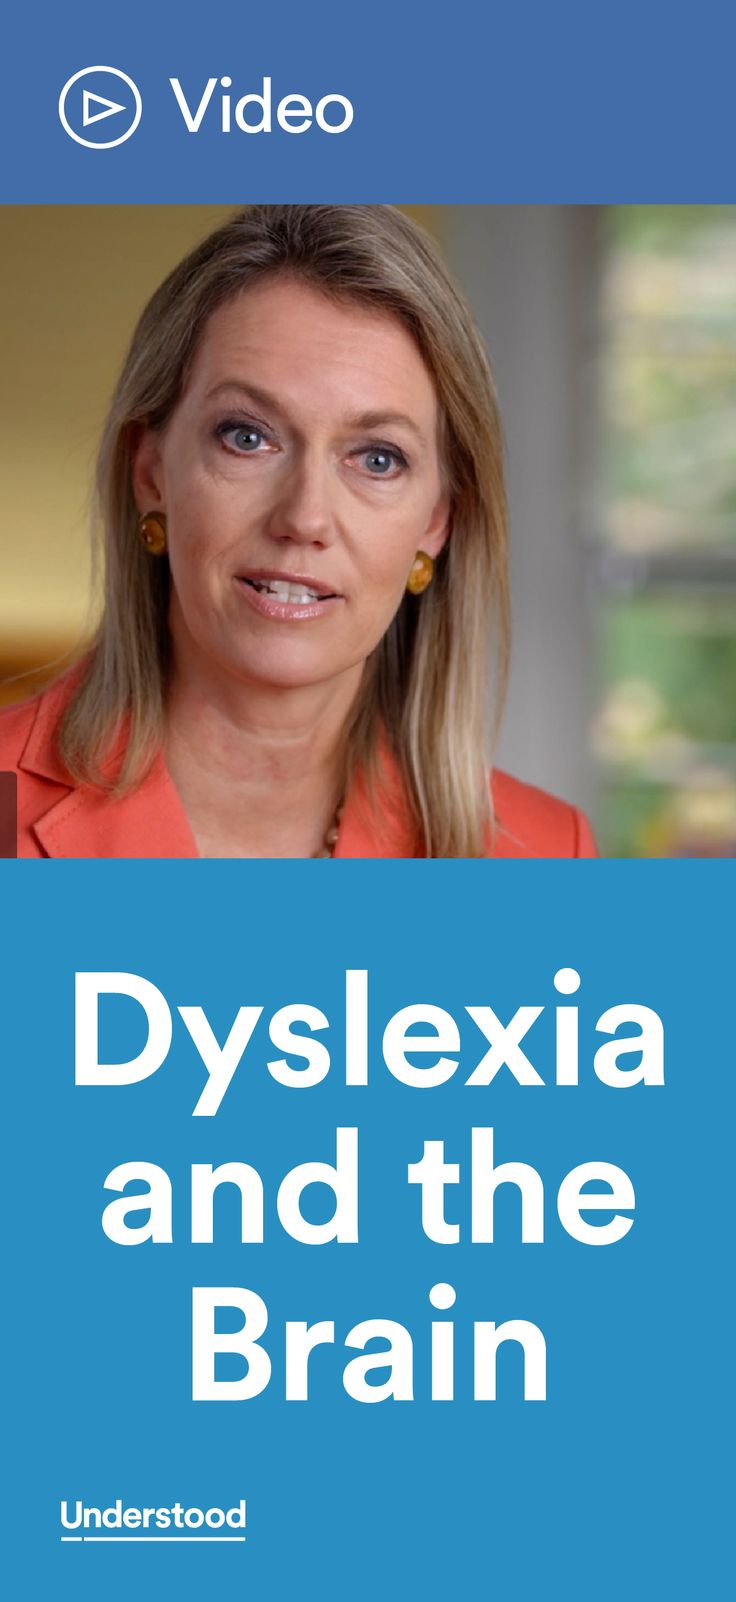 Dyslexia and the Brain: A Different Way of Thinking